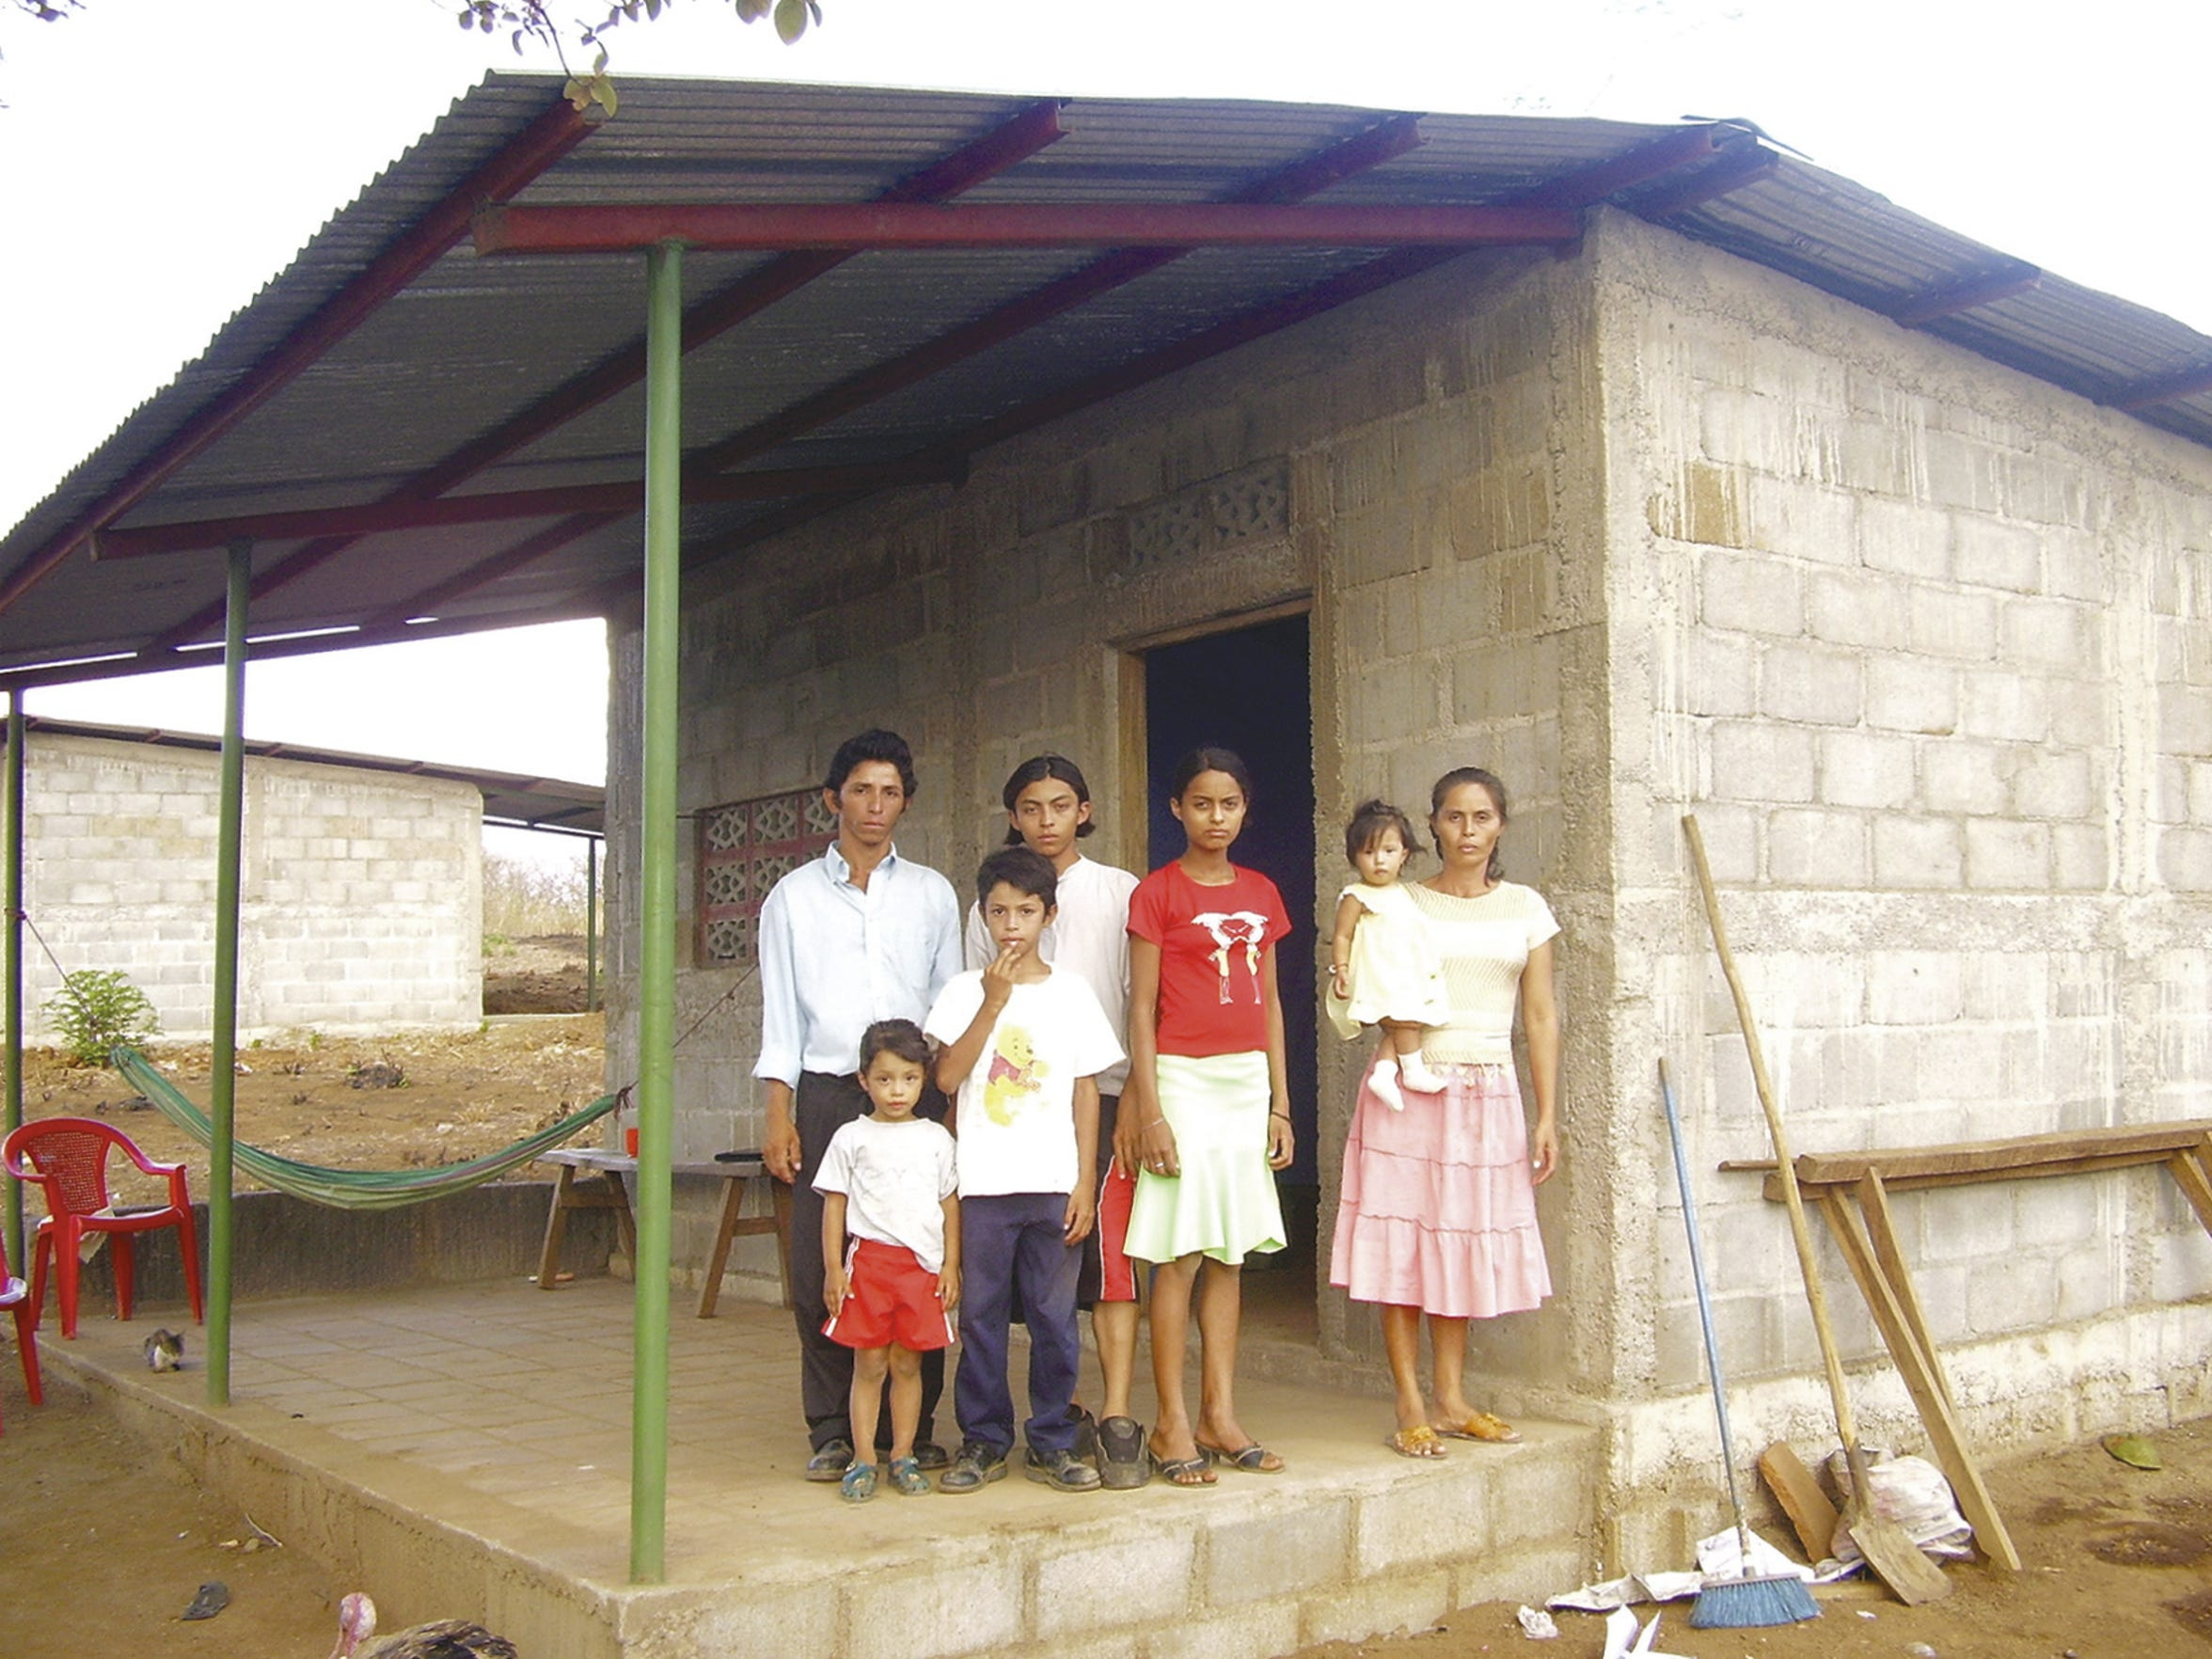 This home was the 500th one built in Nicaragua by the